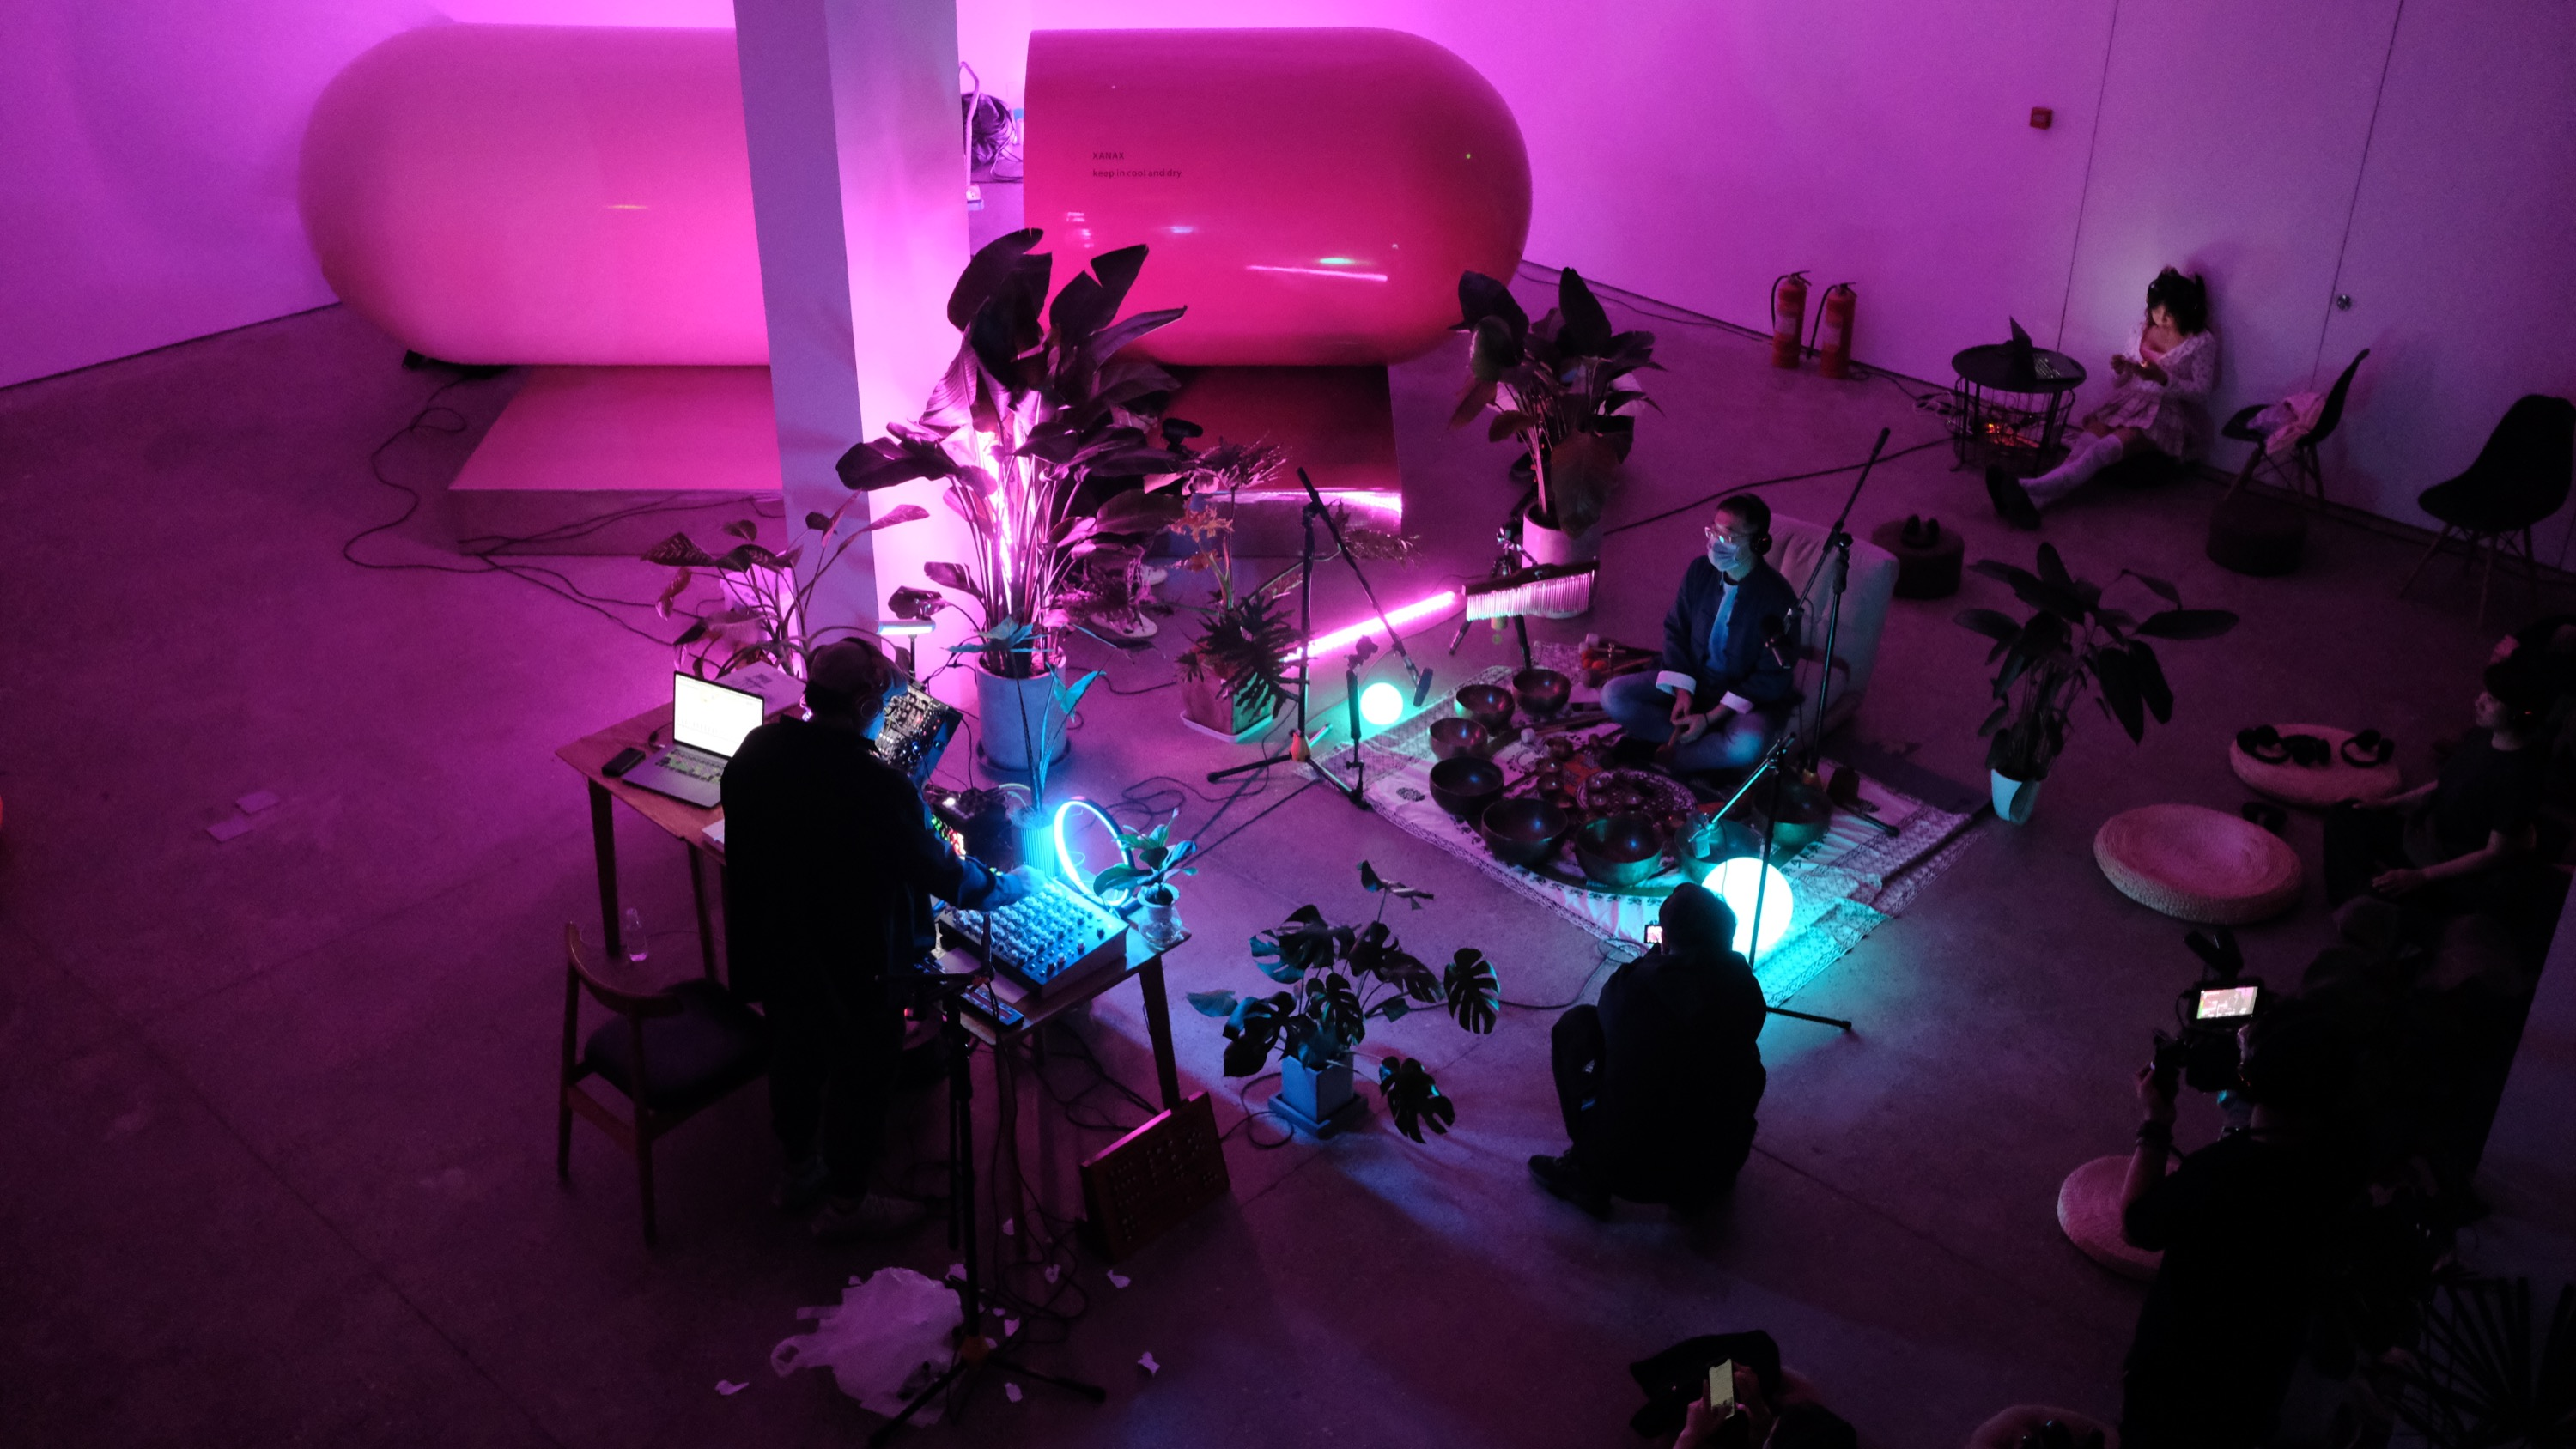 🔦 Lucid Dream – Qing Xin Project @ Modern Sky HQ